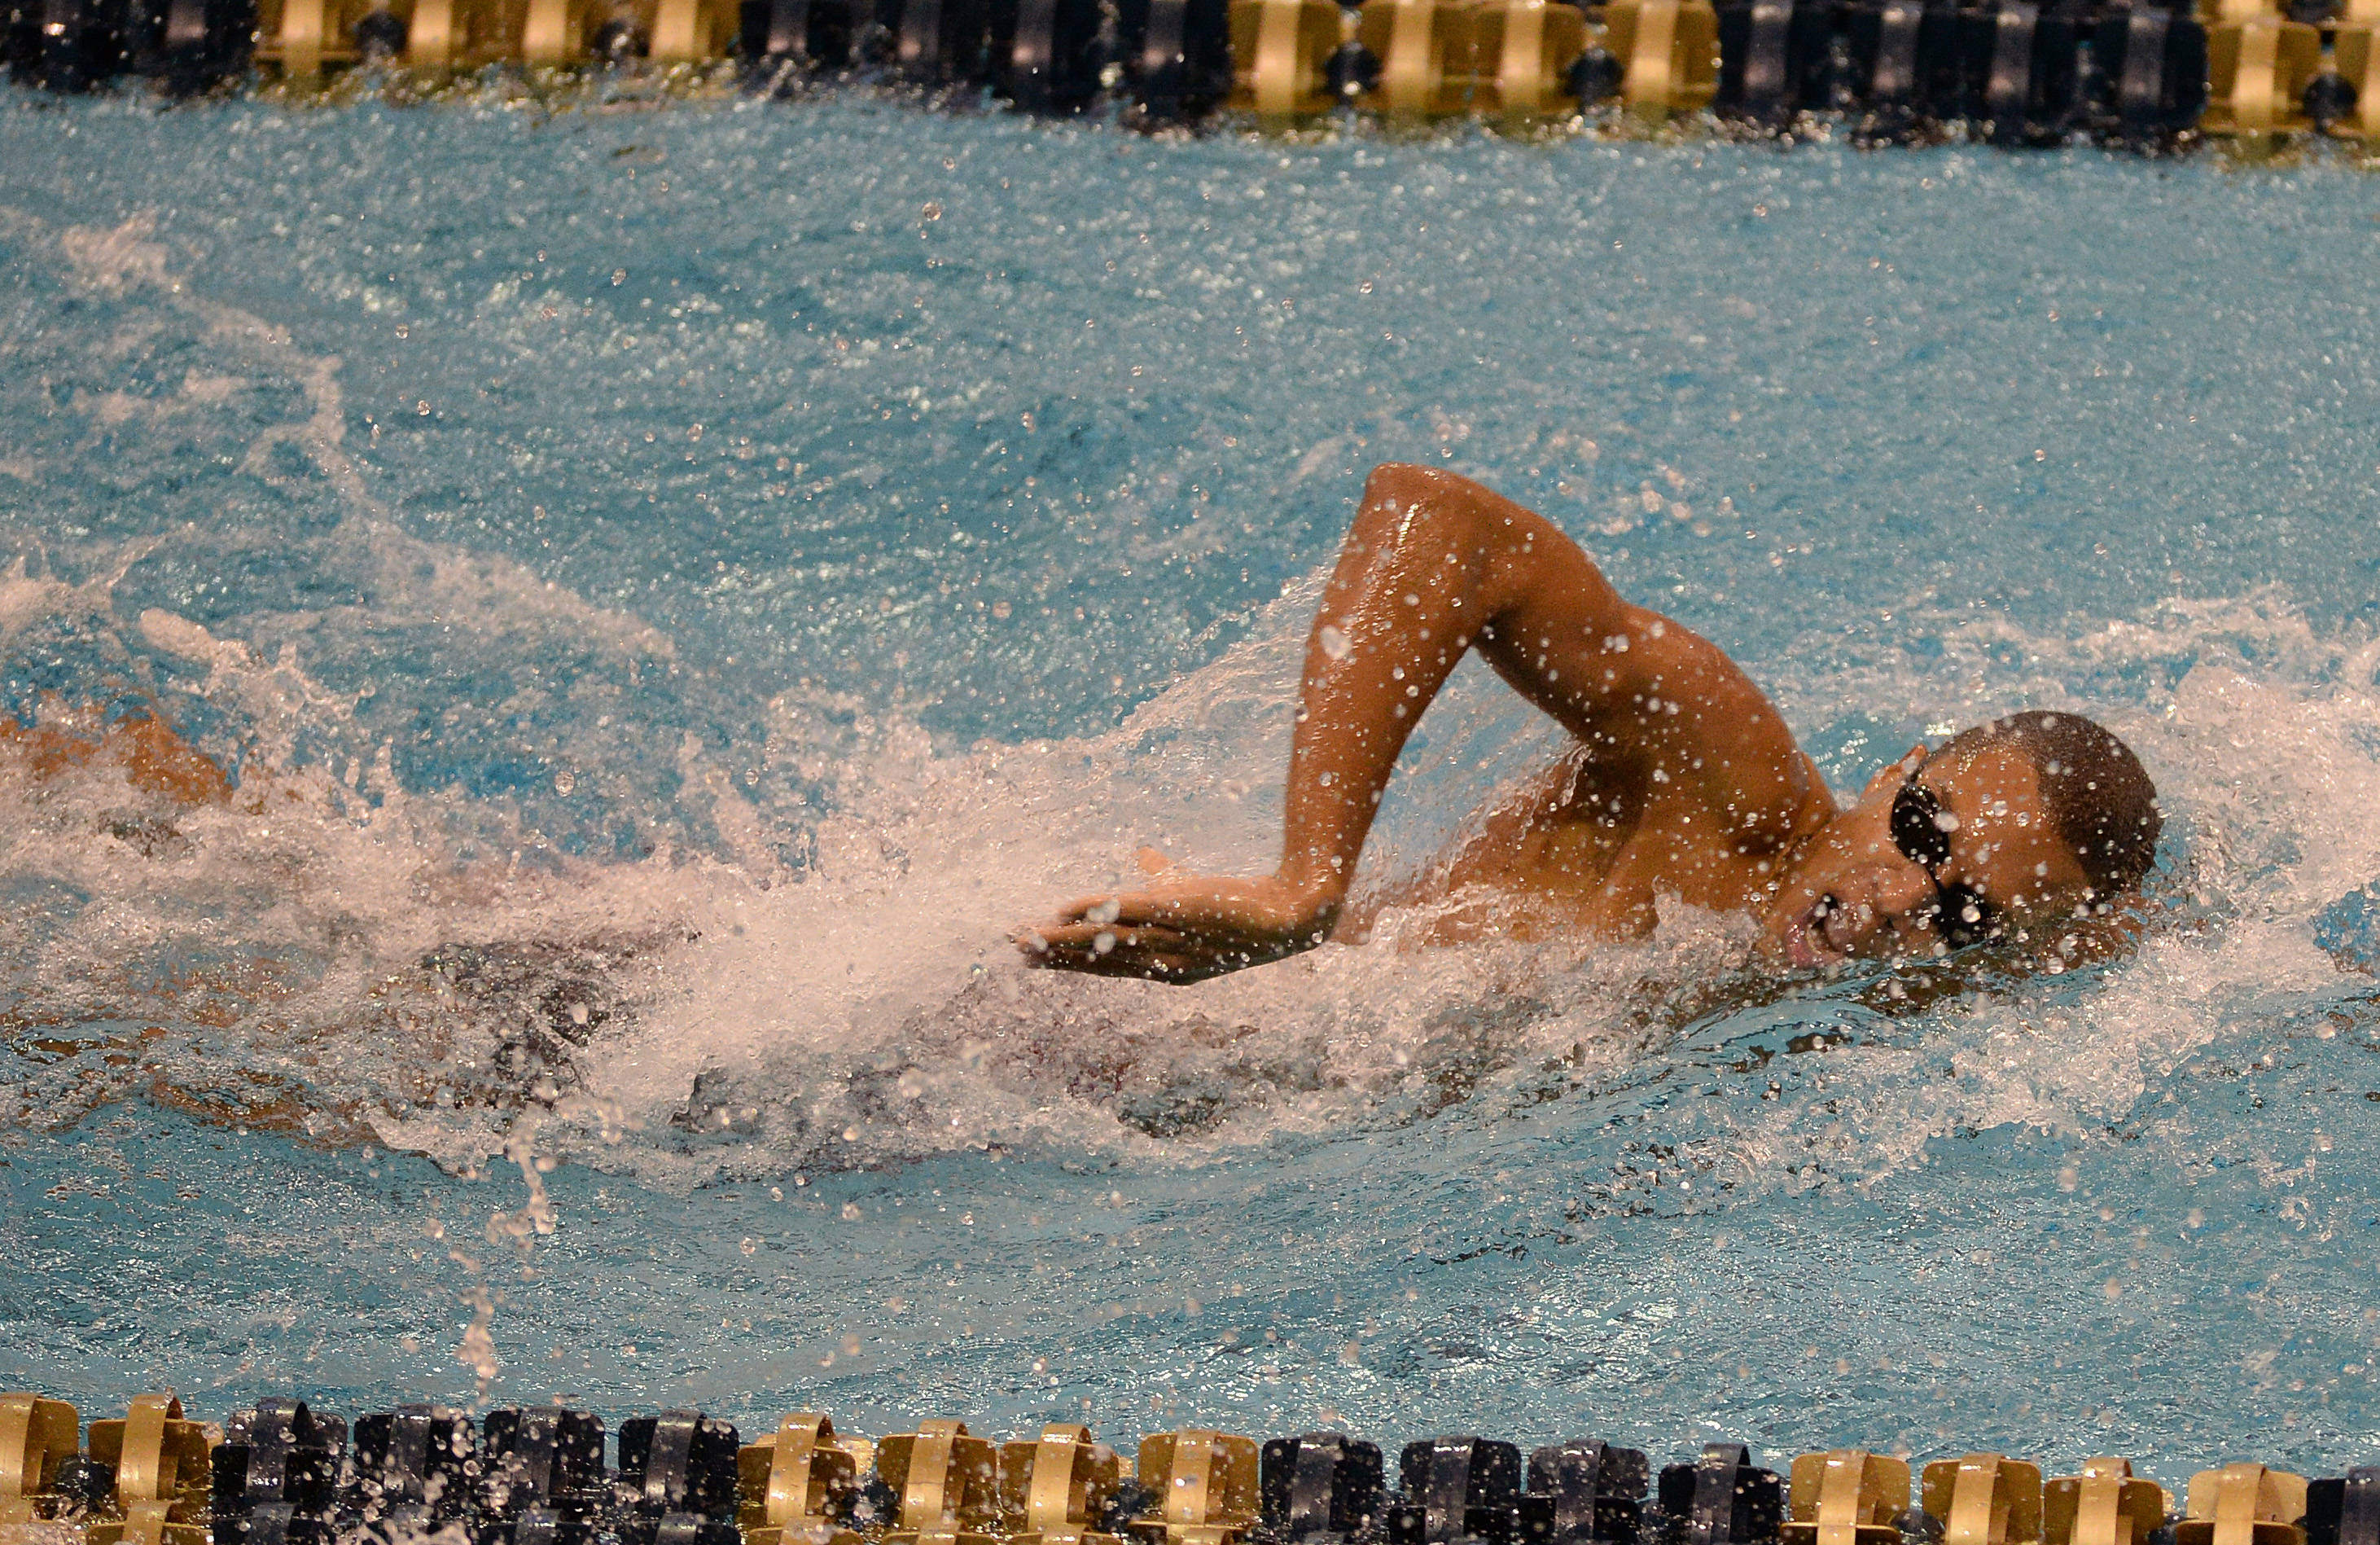 Calvin Bryant in the 500 free - Mitch White